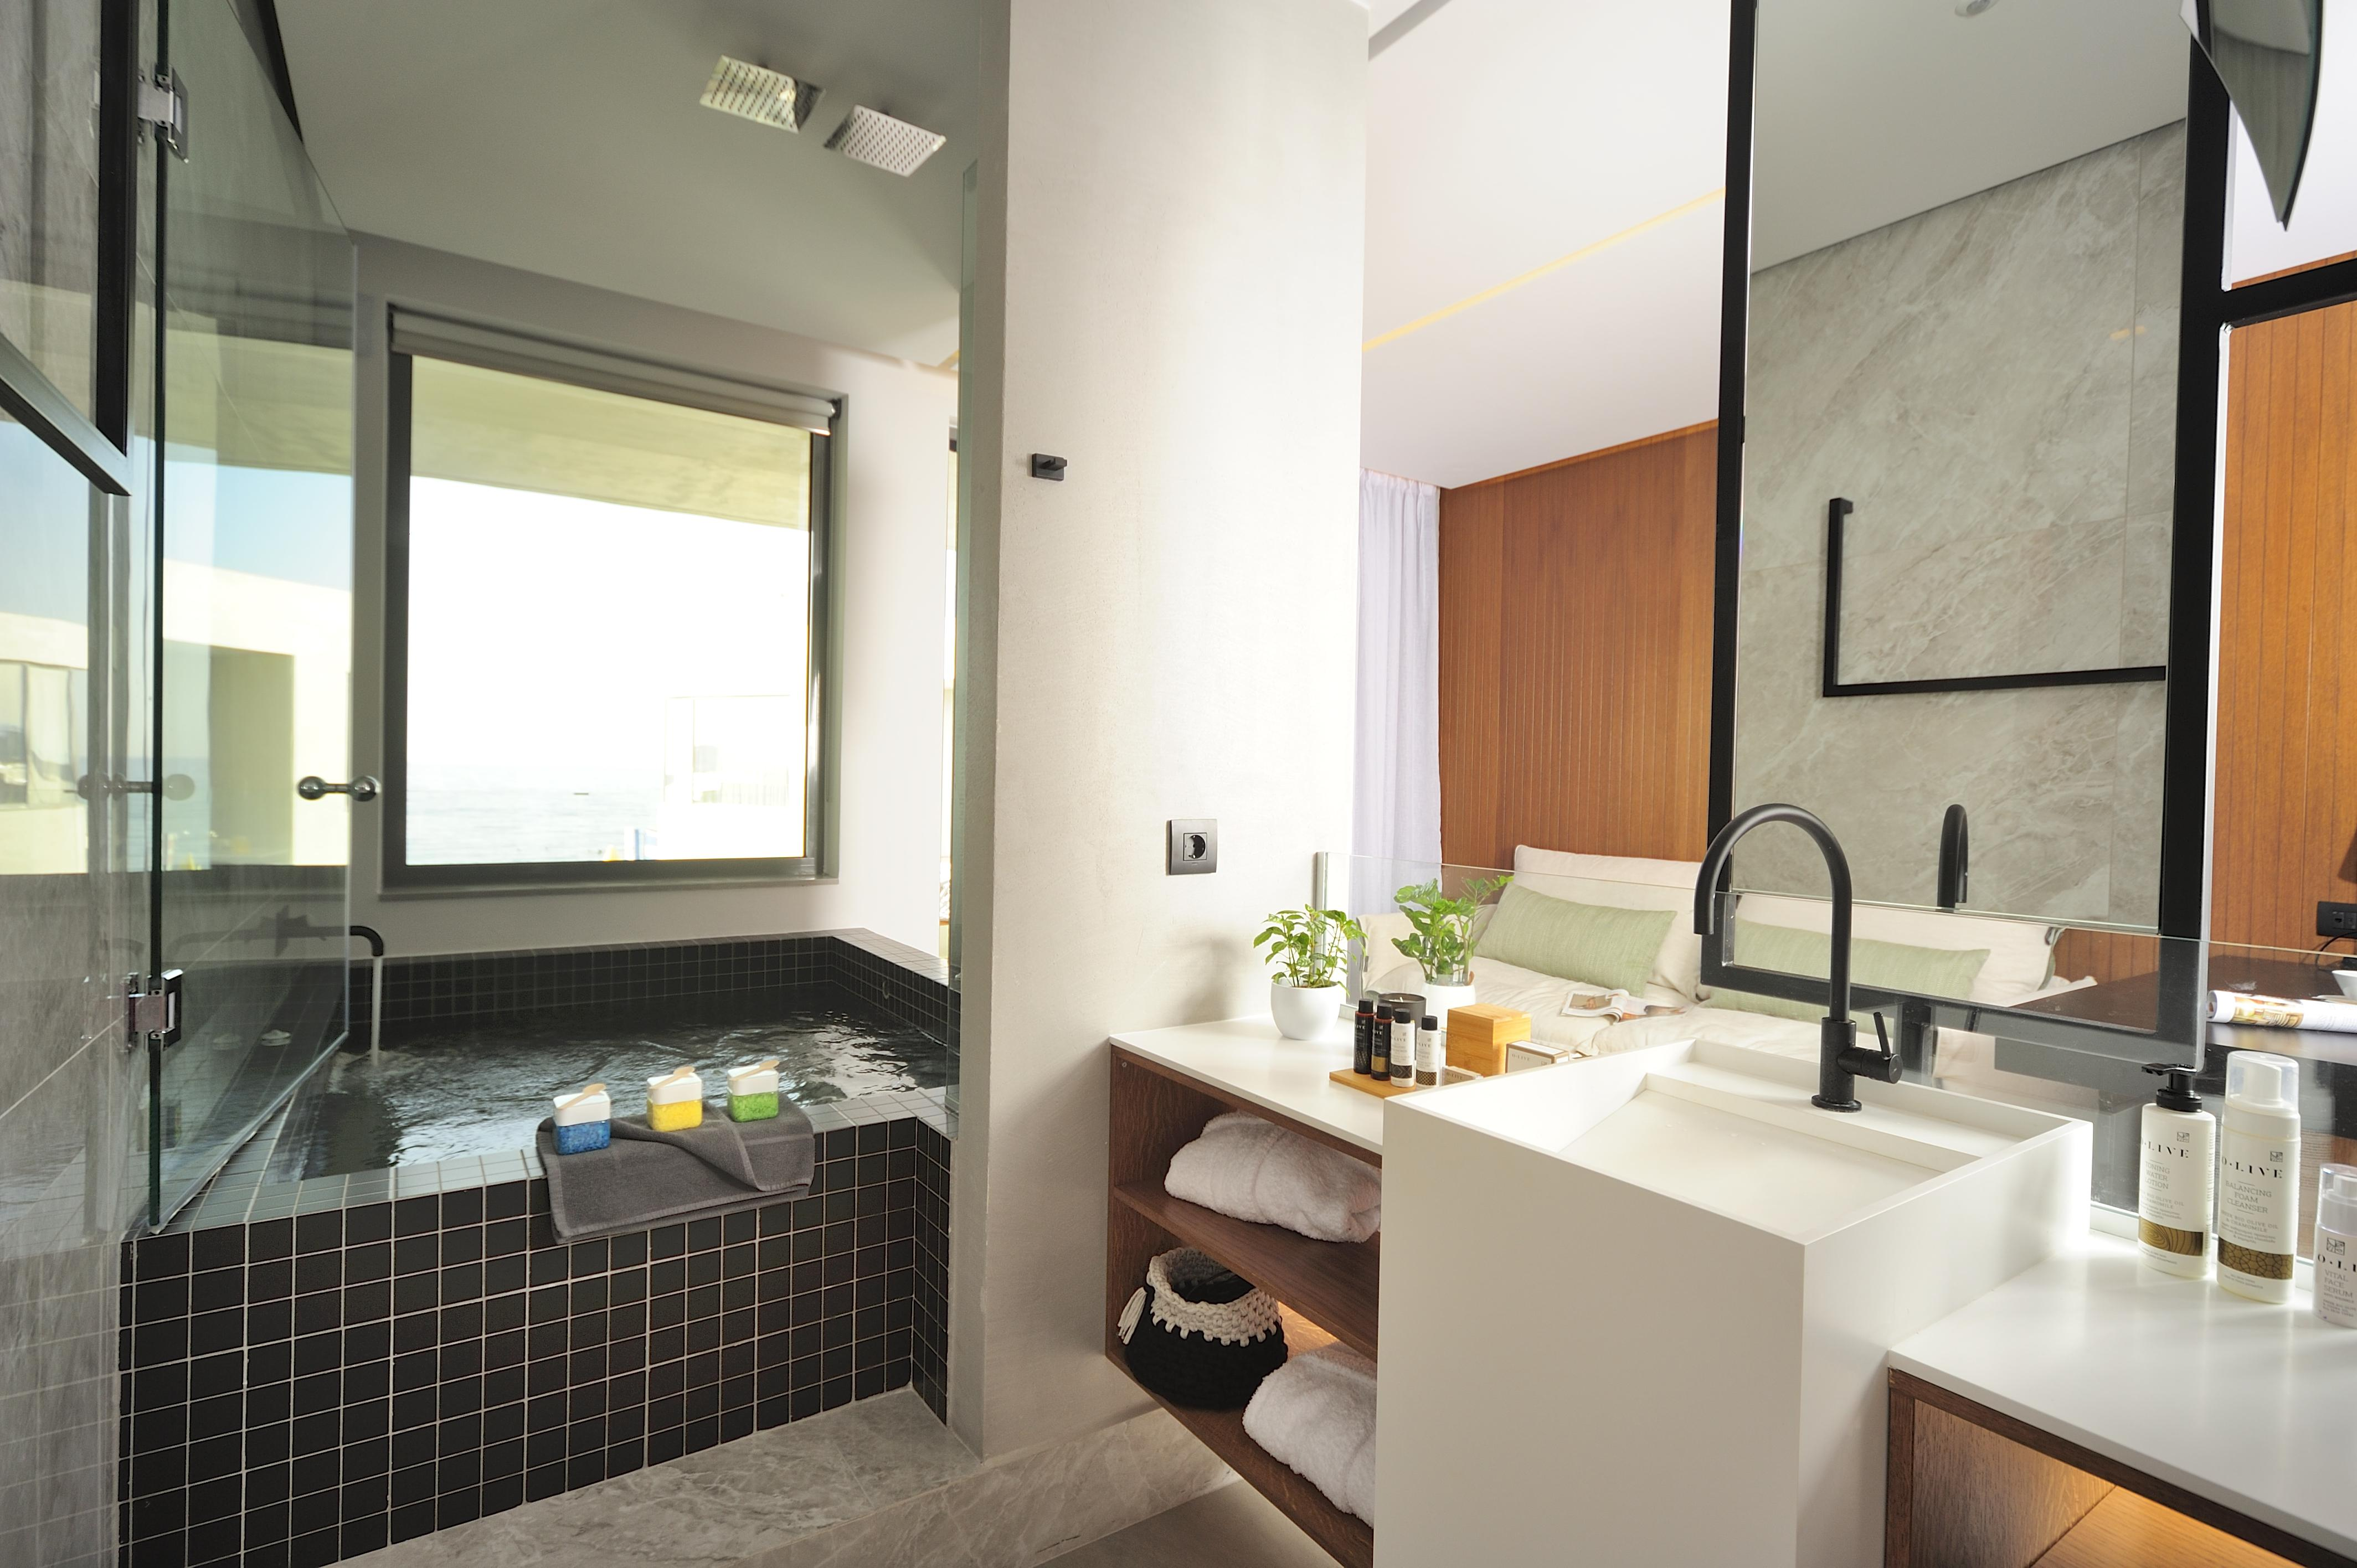 Dyo Suites Luxury Boutique Hotel Rethymno Crete - Selenium Suite